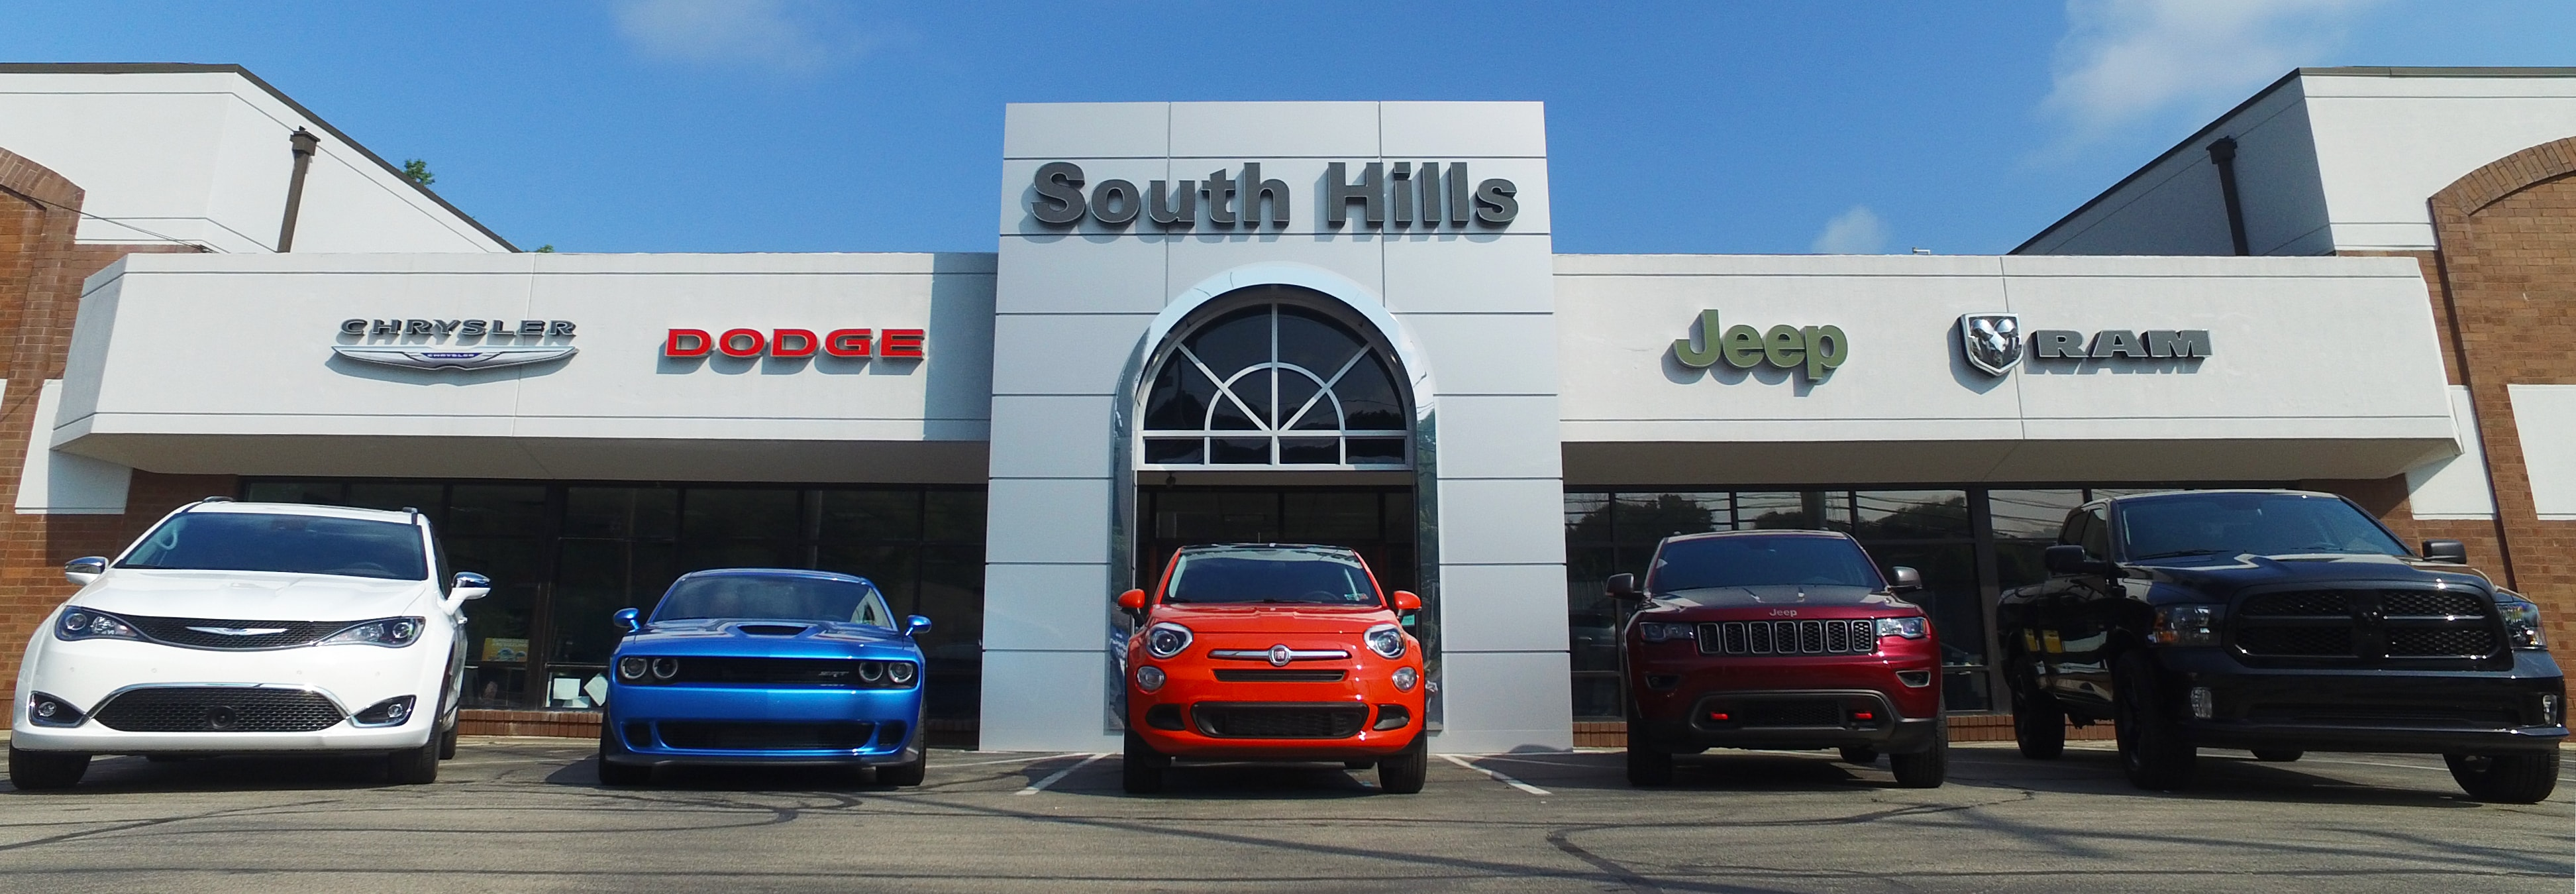 s news dealership dodge tactics article sued county jeep over chrysler advertiser u lee deceptive image